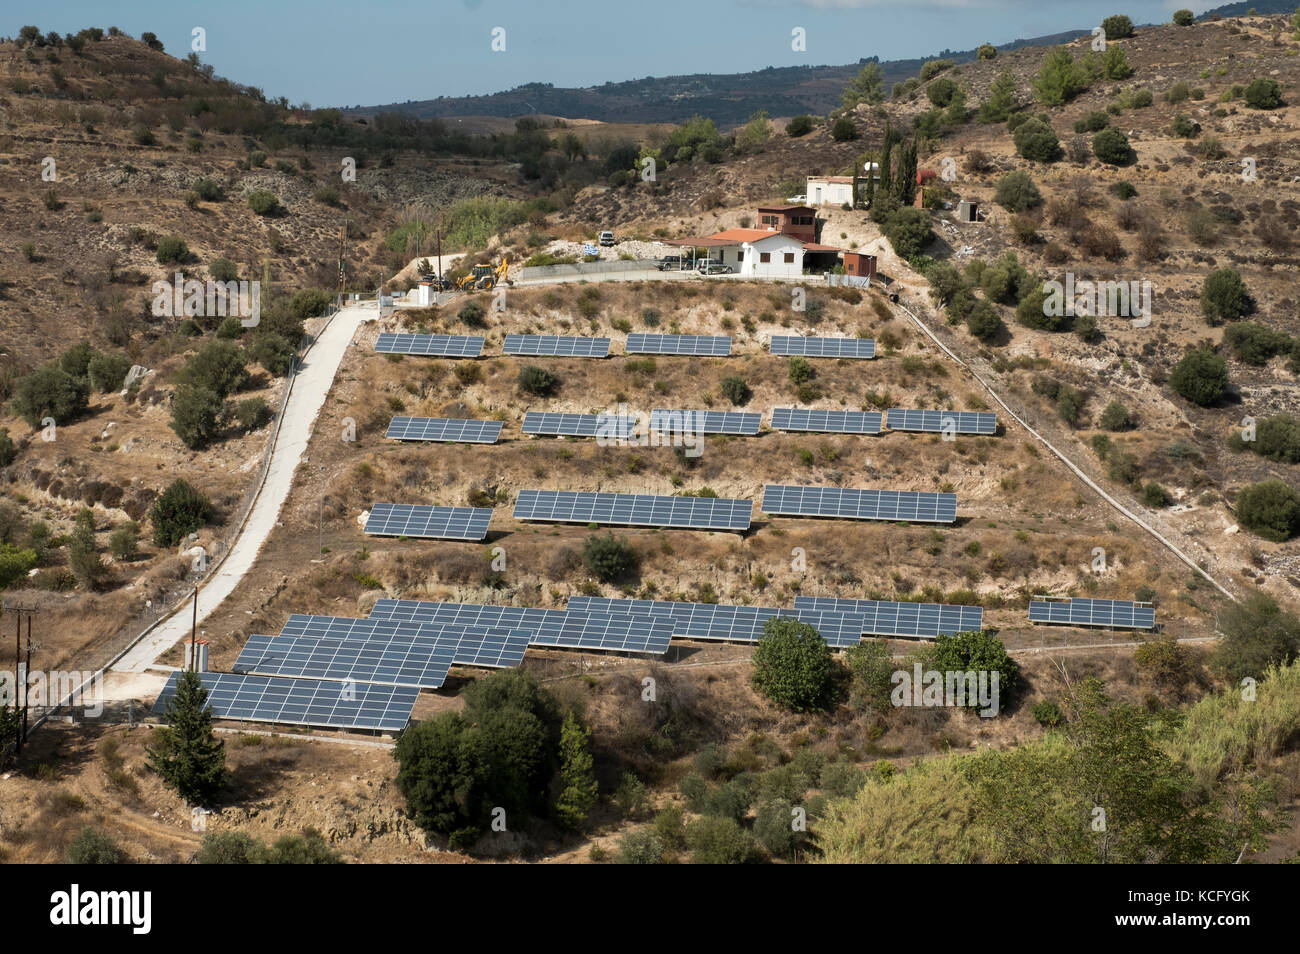 A small solar farm in the Paphos region of the Republic of Cyprus - Stock Image